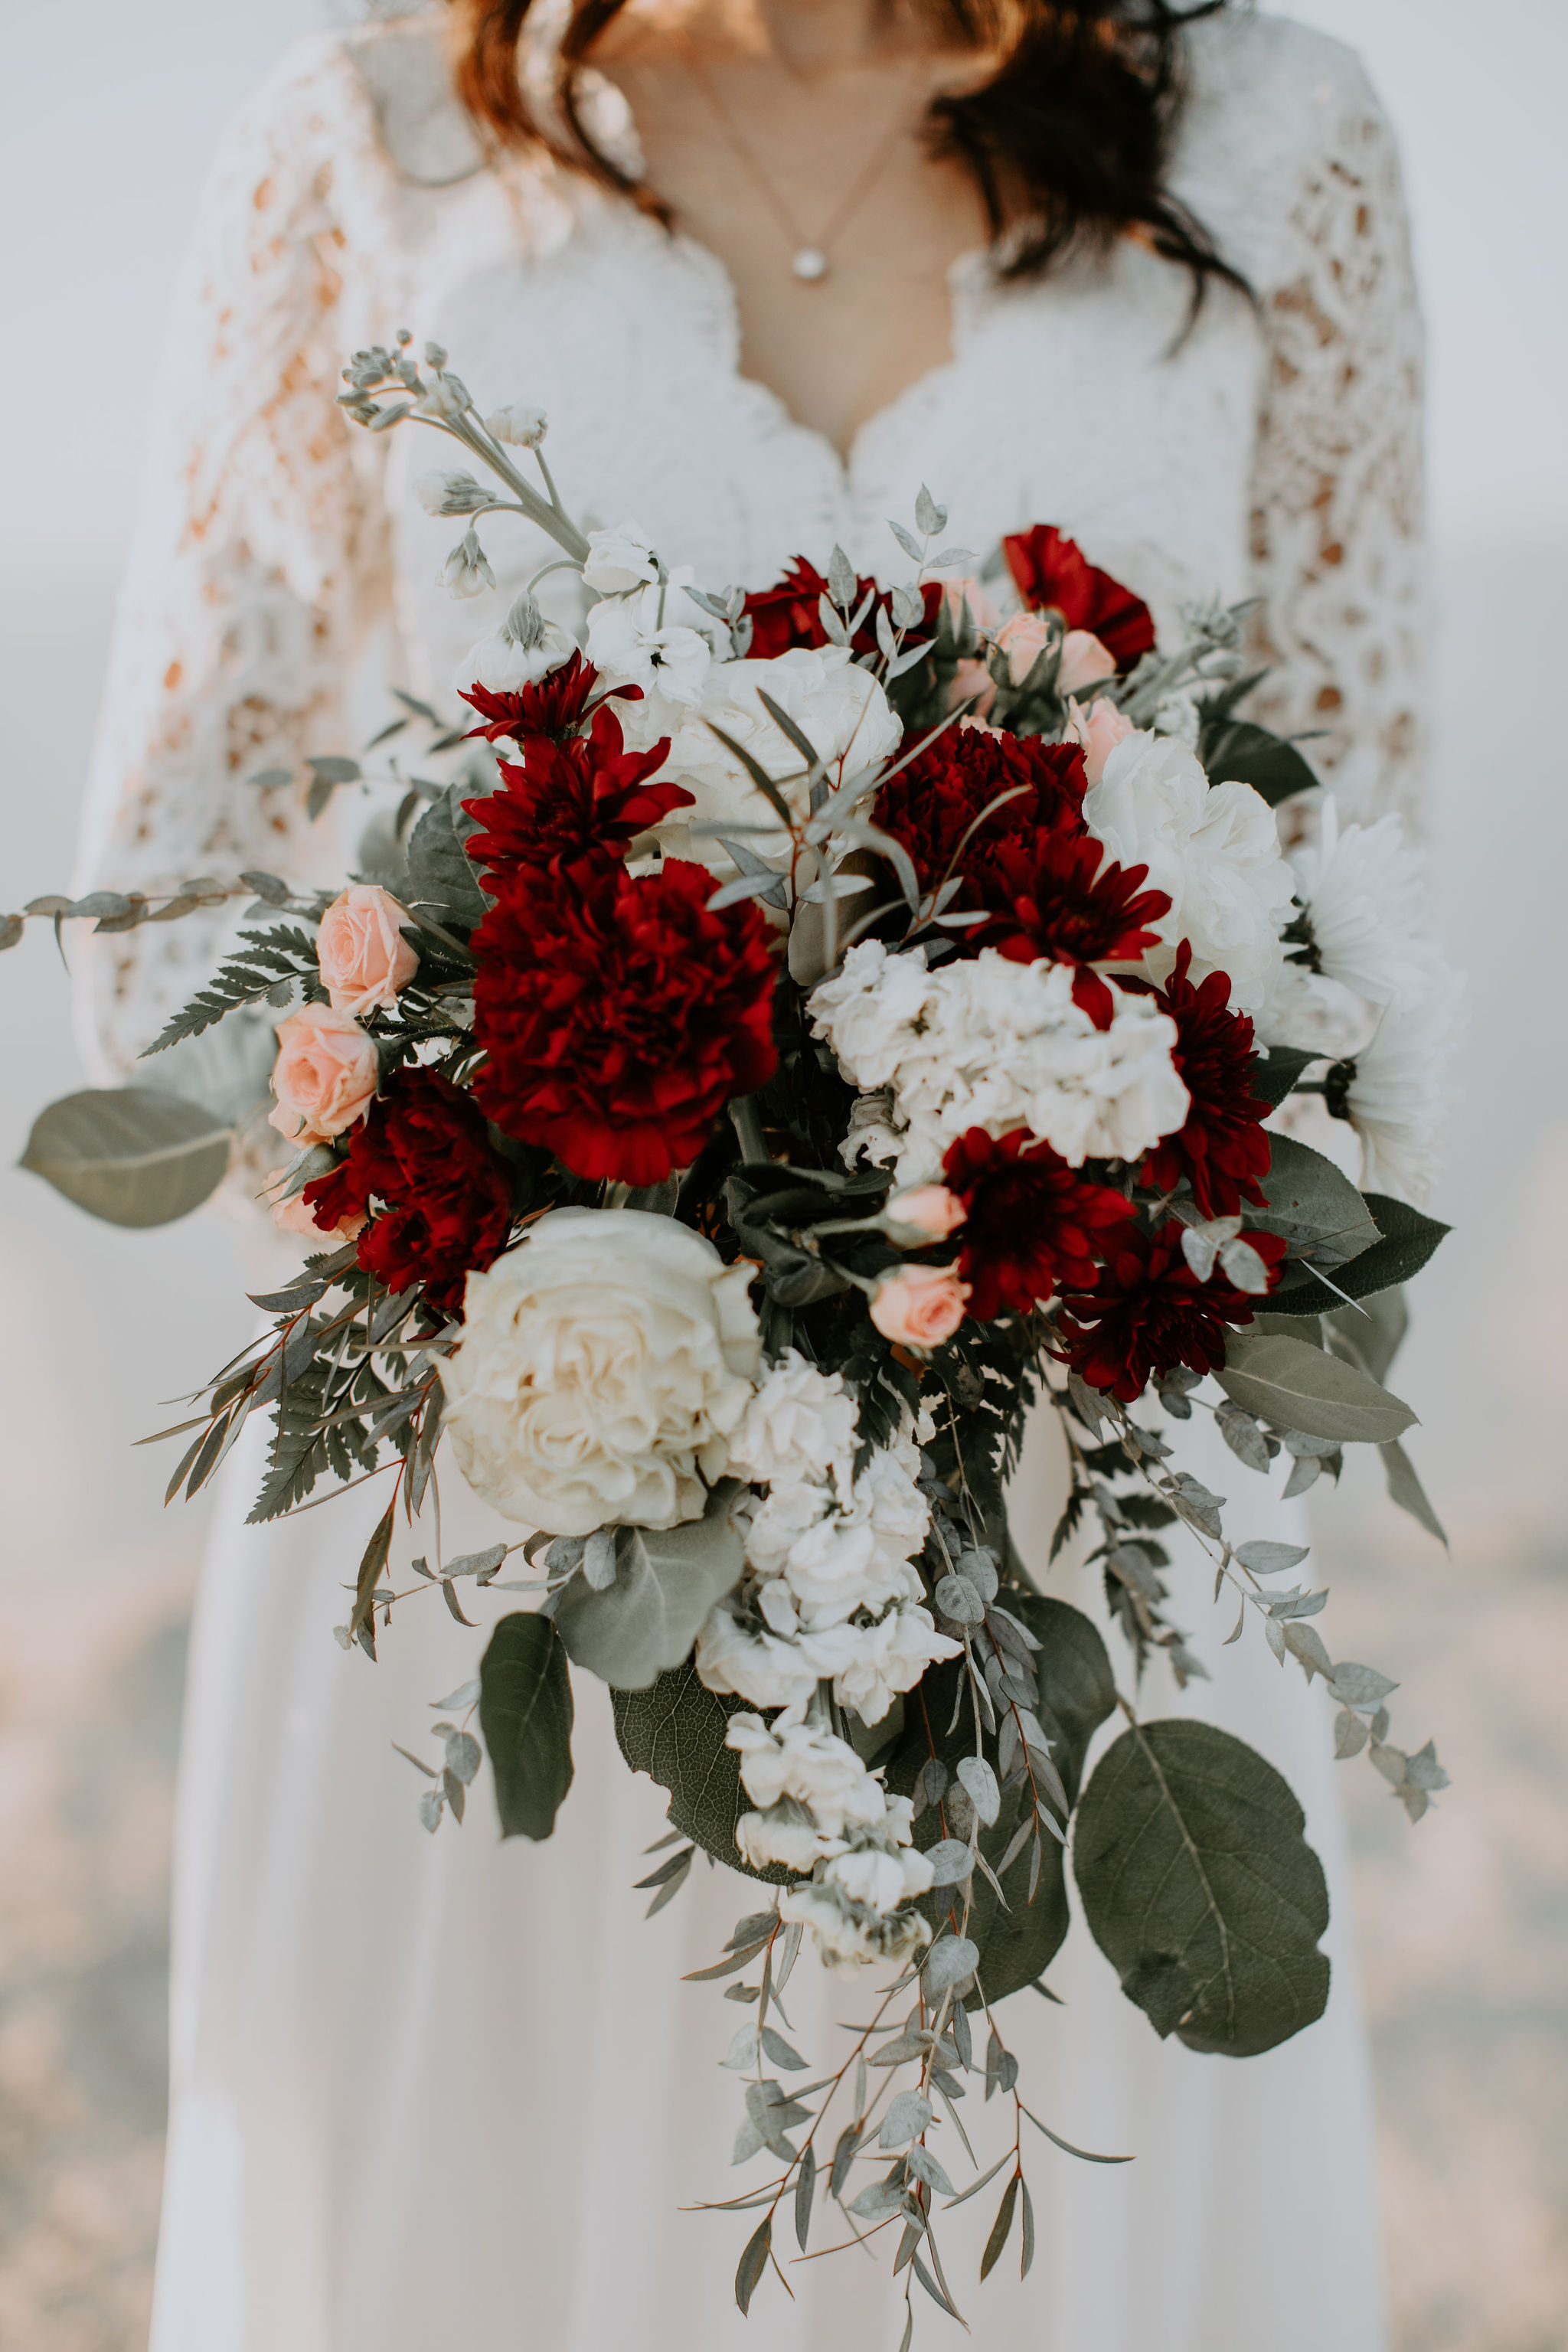 Yosemite National Park Elopement Flowers May Iosotaluno Photography